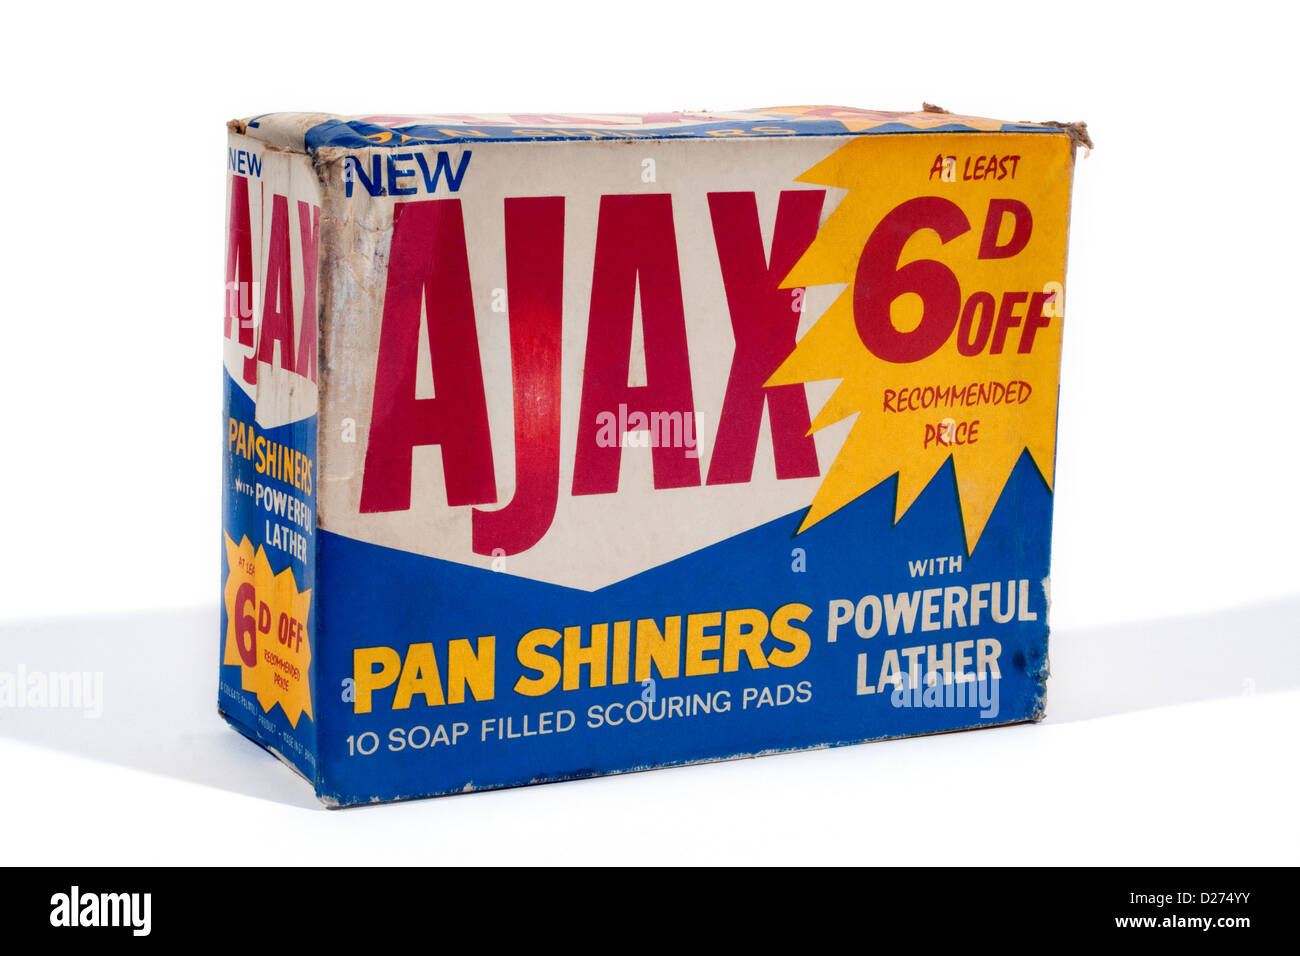 Old Ajax Pan Shiners box with sixpence off offer - Stock Image